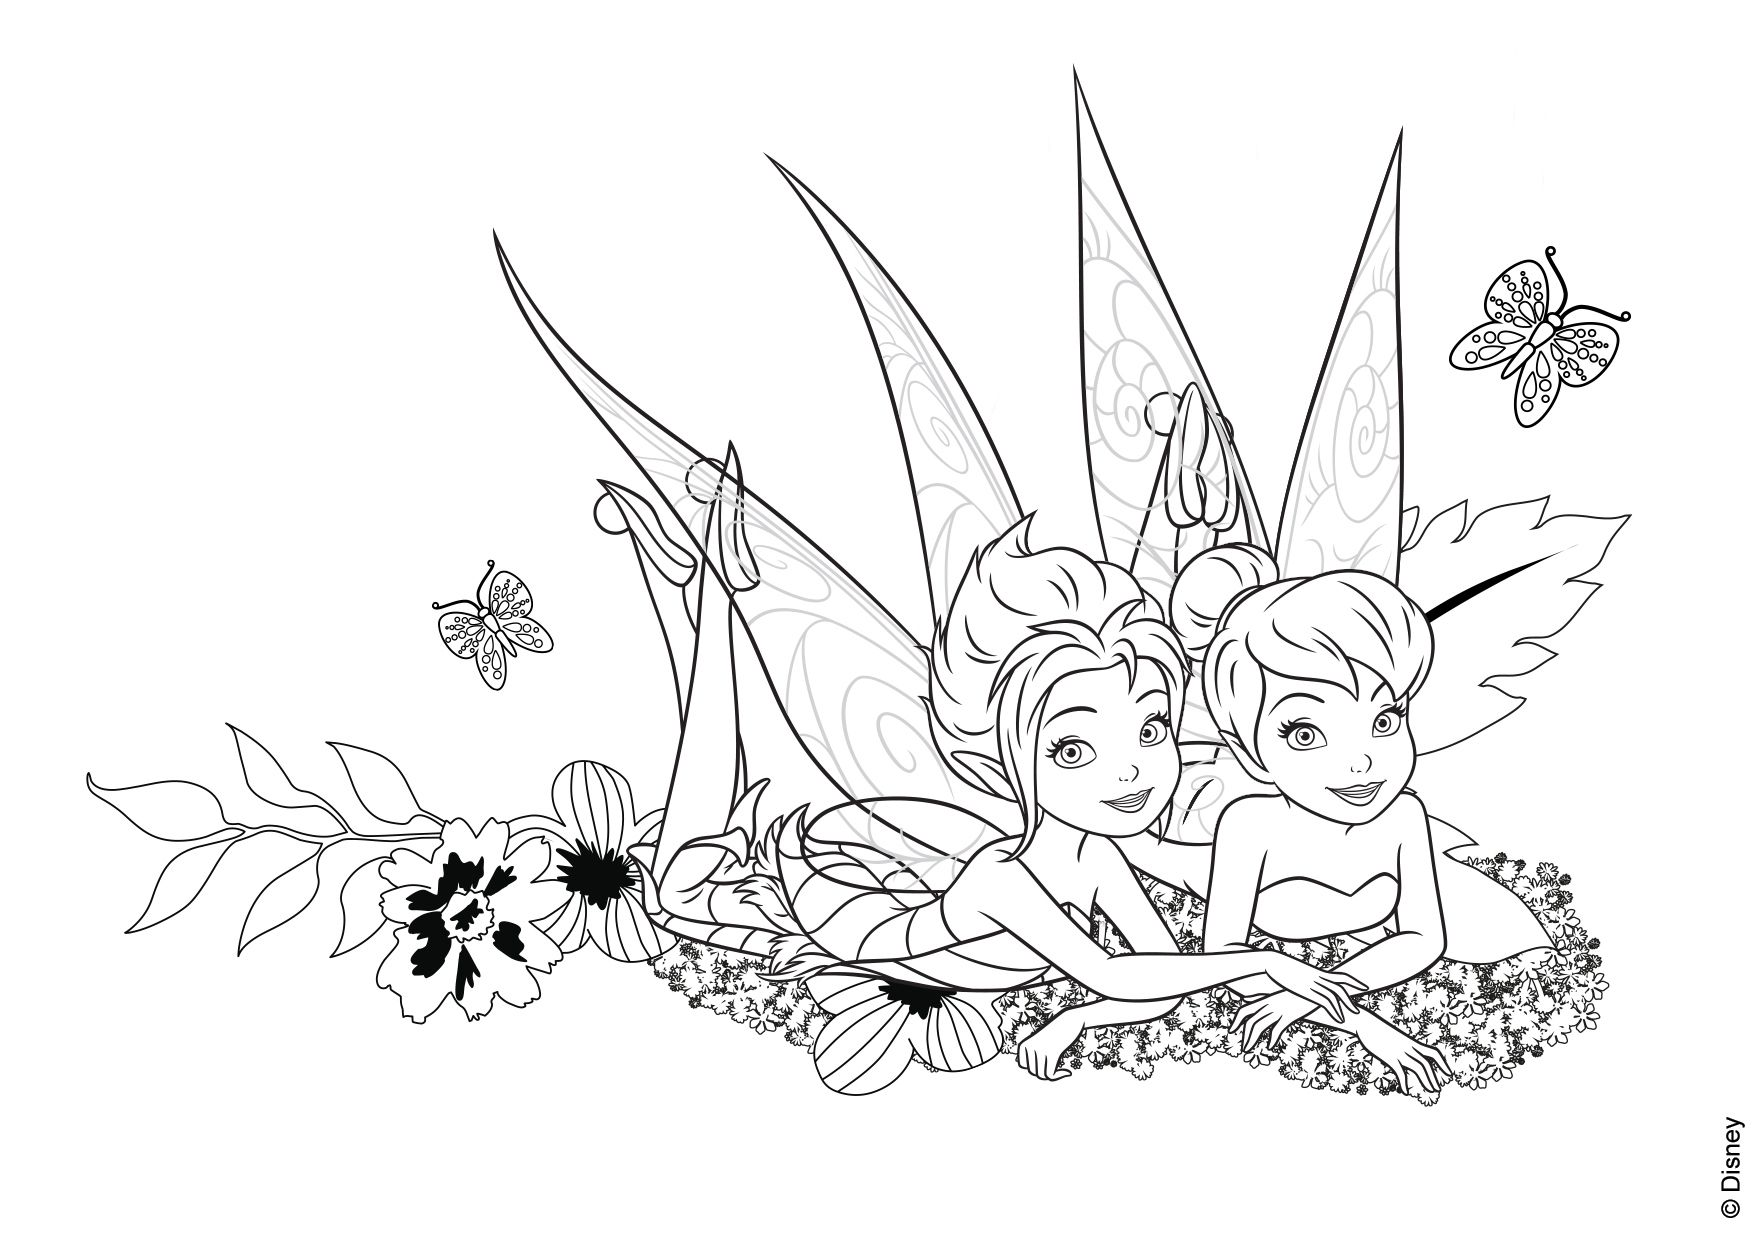 Pin By Pam On Disney Tinkerbell Coloring Pages Horse Coloring Pages Disney Coloring Pages